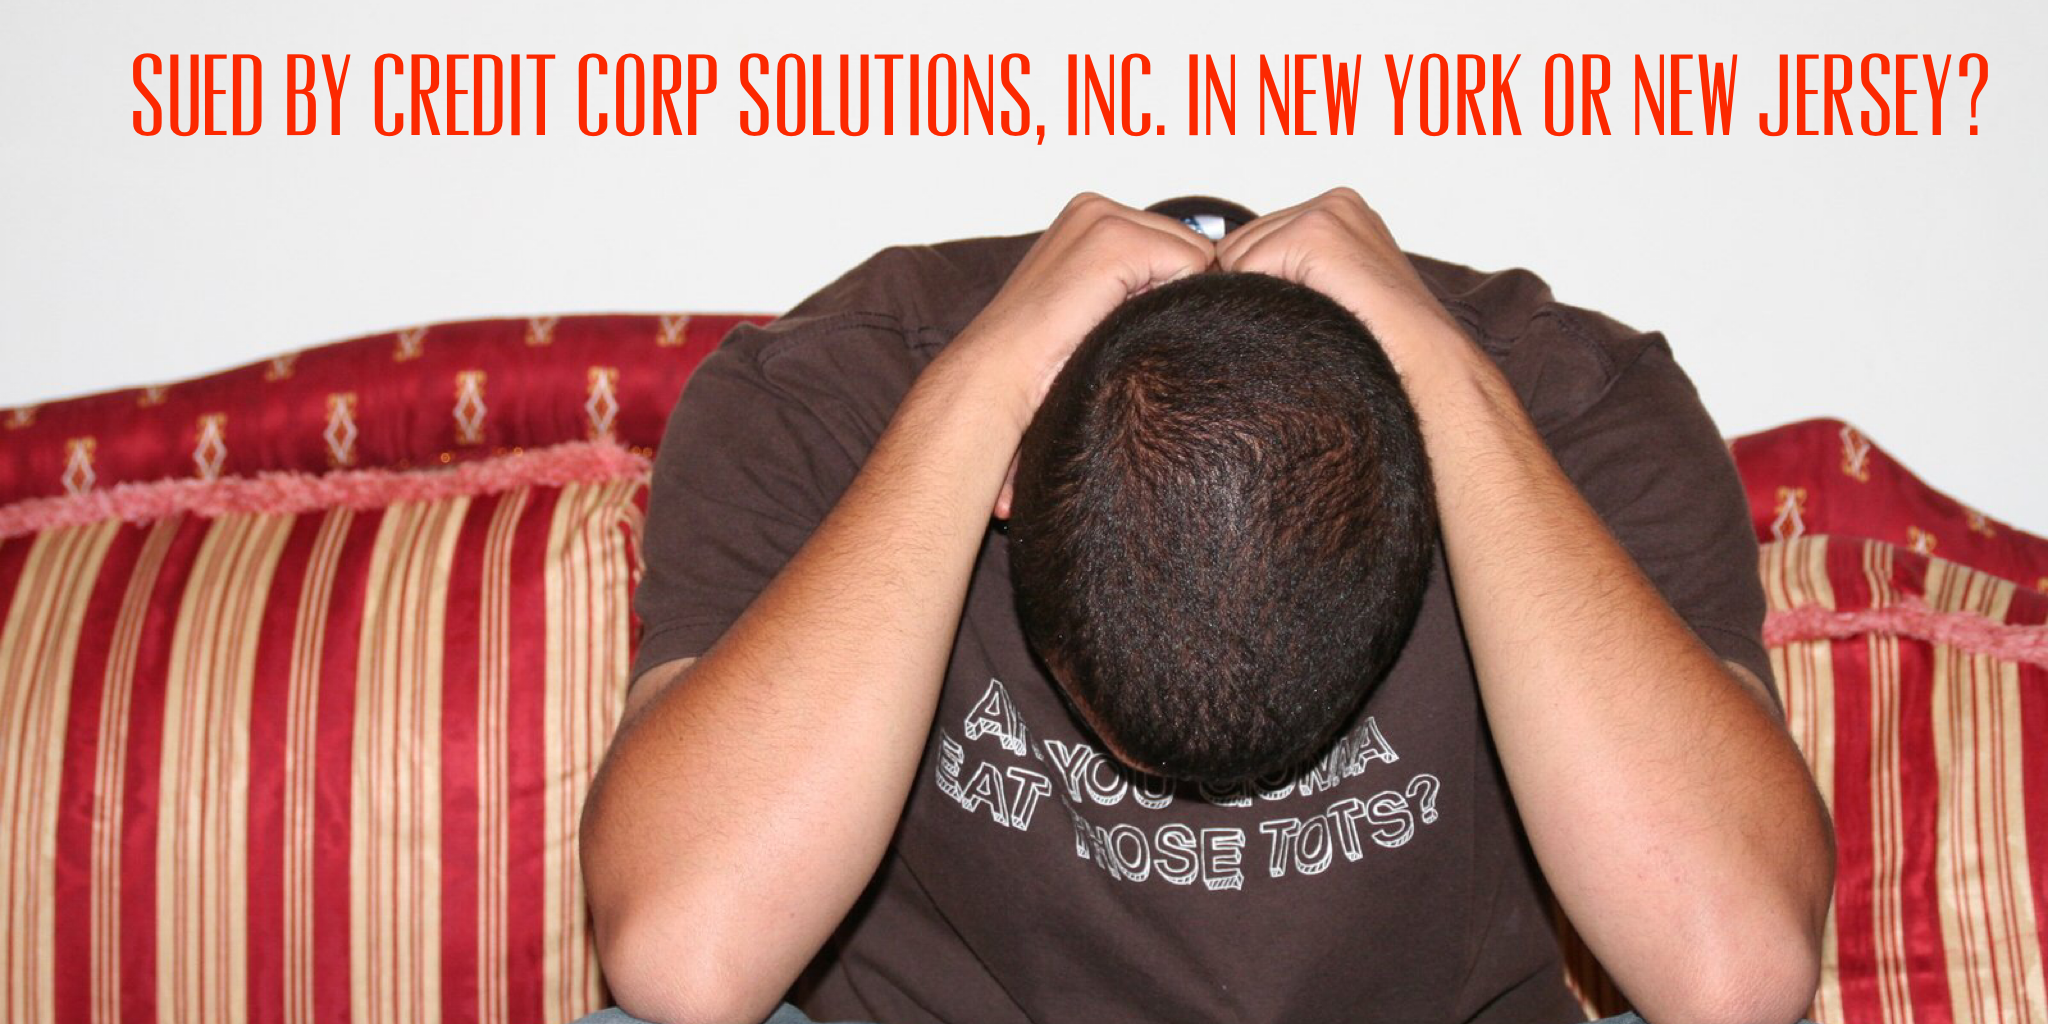 Sued By Credit Corp Solutions, Inc  in New York or New